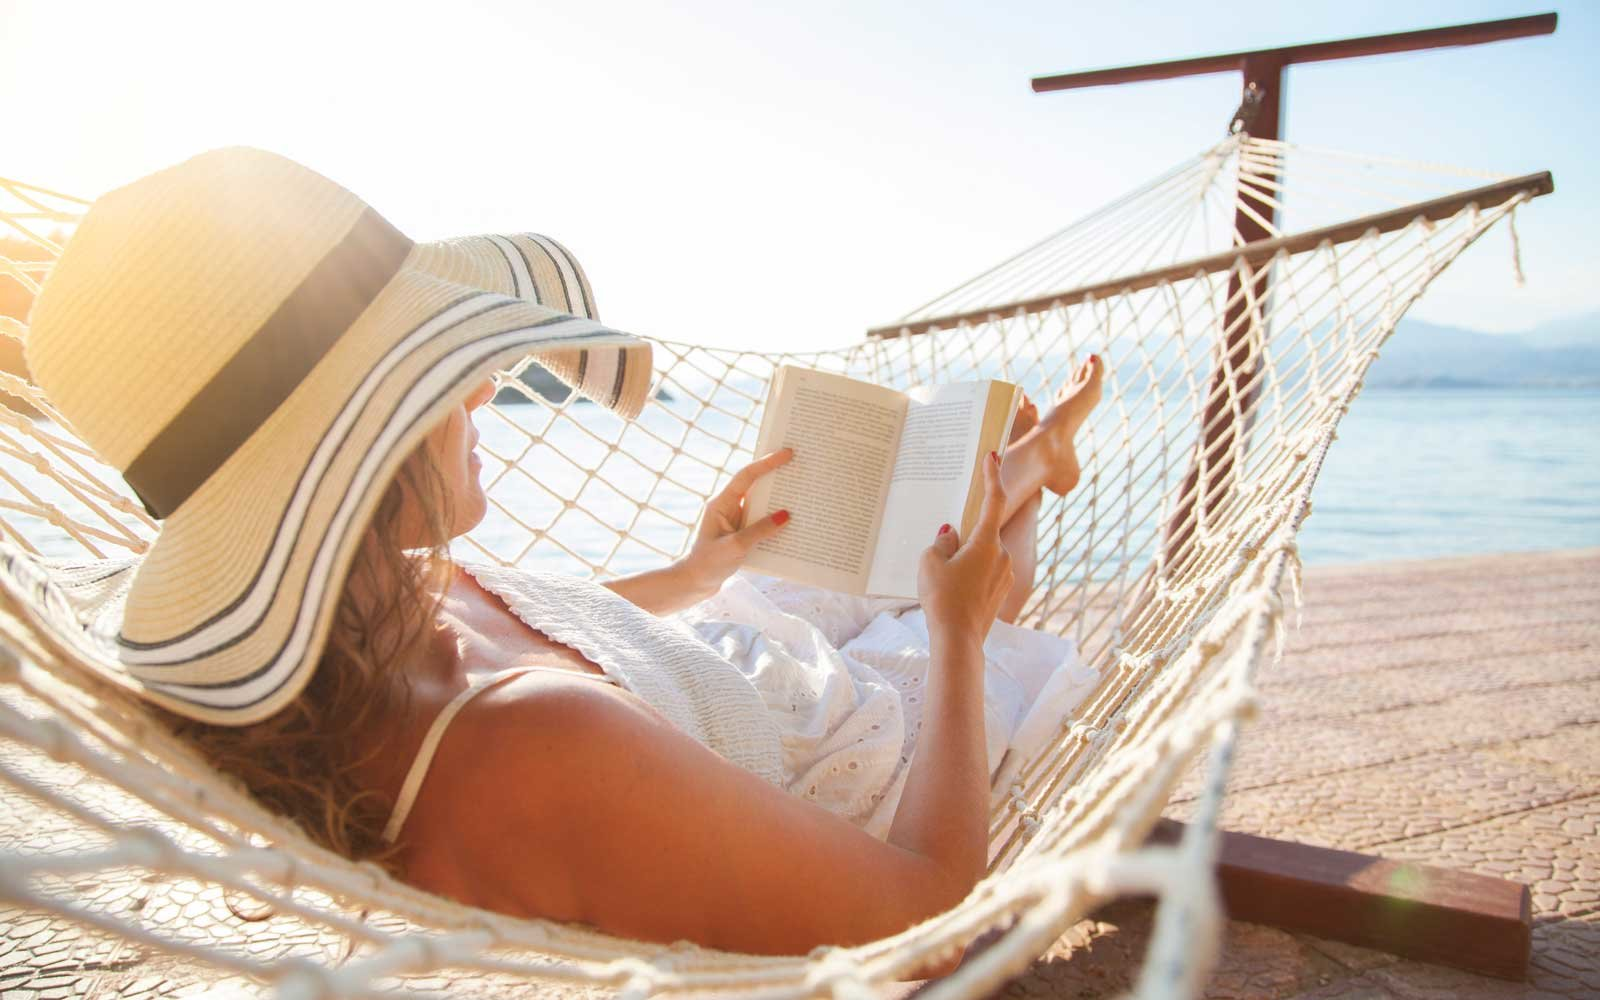 Young woman, reading a book in a hammock at sunset.